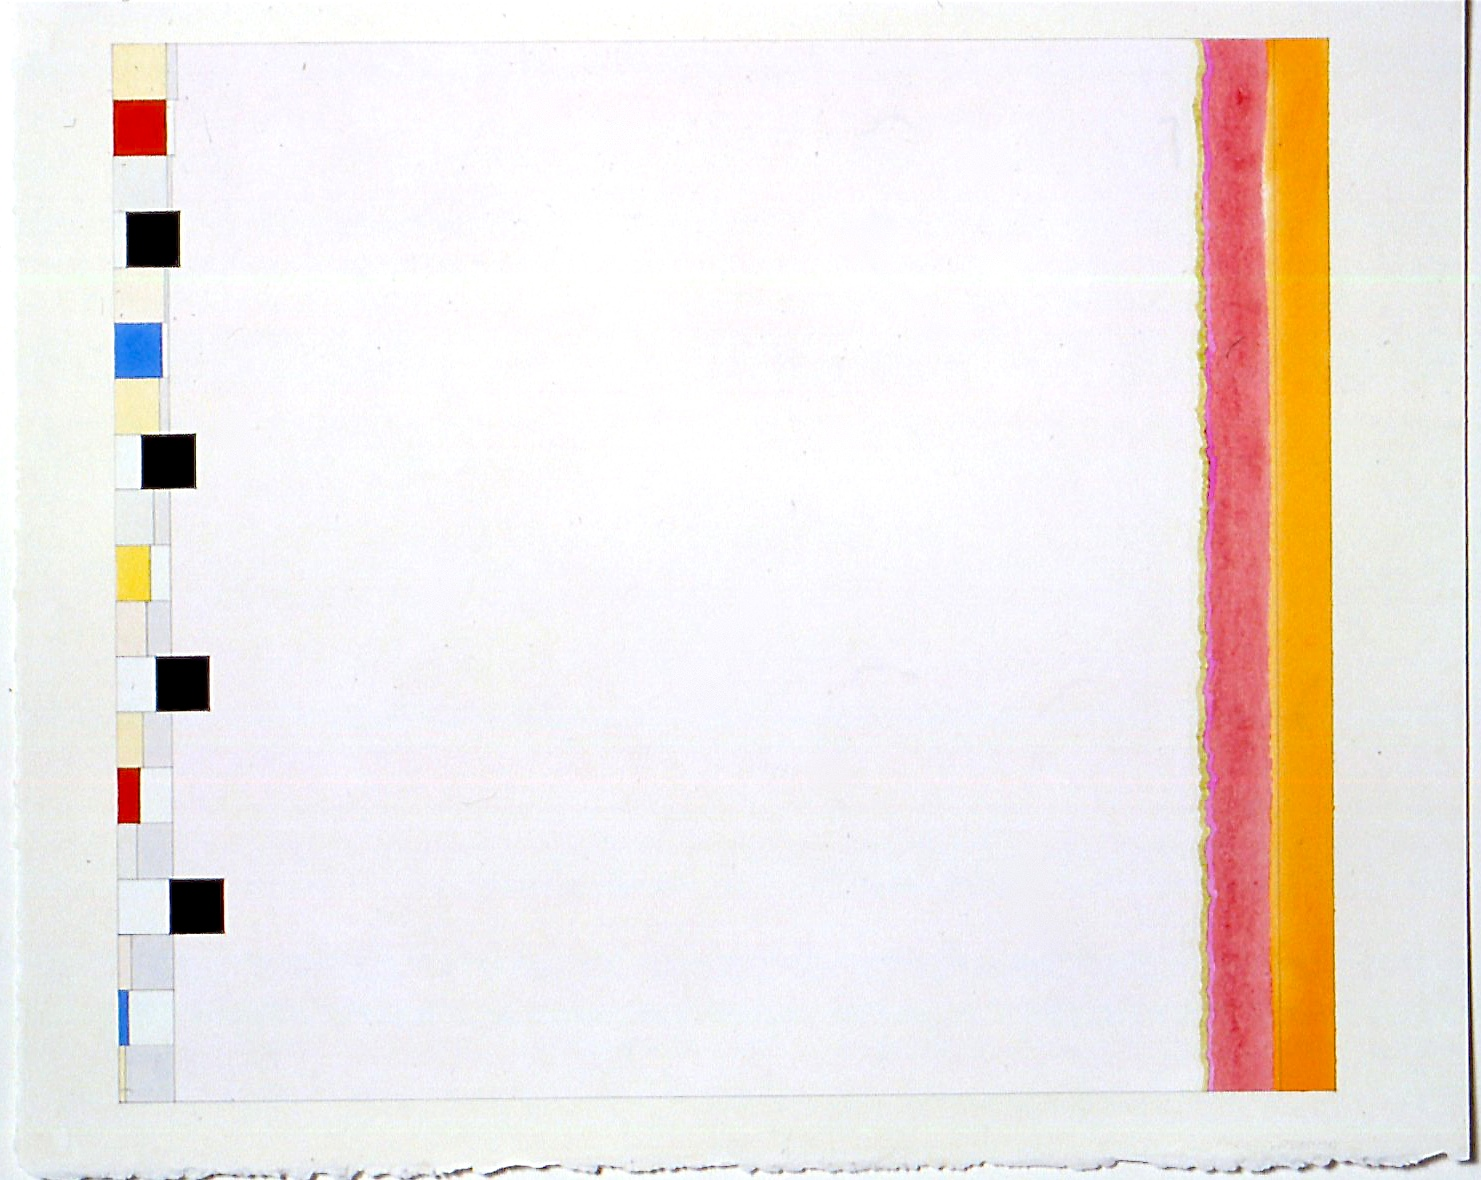 """Untitled (PG17), 2002, gouache and watercolour on paper, 20 3/16""""x23 3/4""""(image), 23 1/2""""x28 3/8"""" (paper)"""